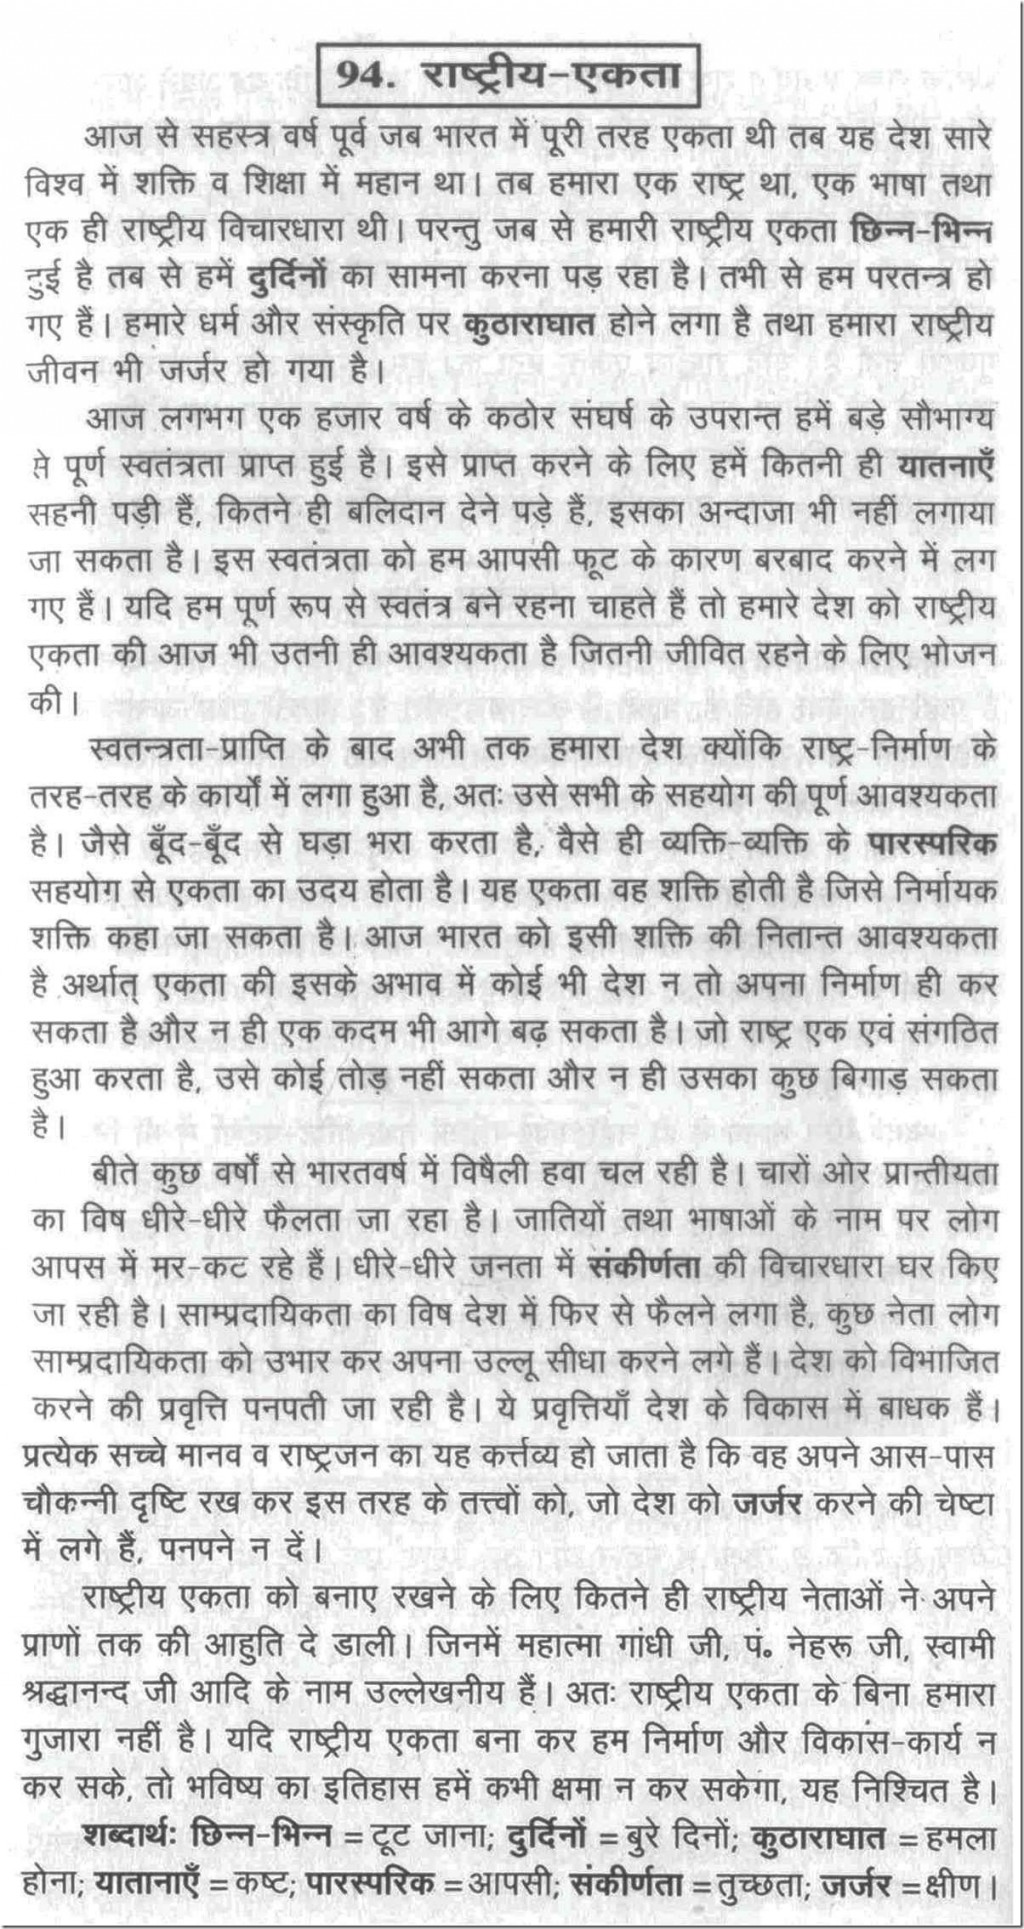 003 Essay On Unity In Hindi Example Diversity Thumb Words Of Nepal Indian Culture India Wikipedia For Class University Pdf With Fascinating Importance National Large